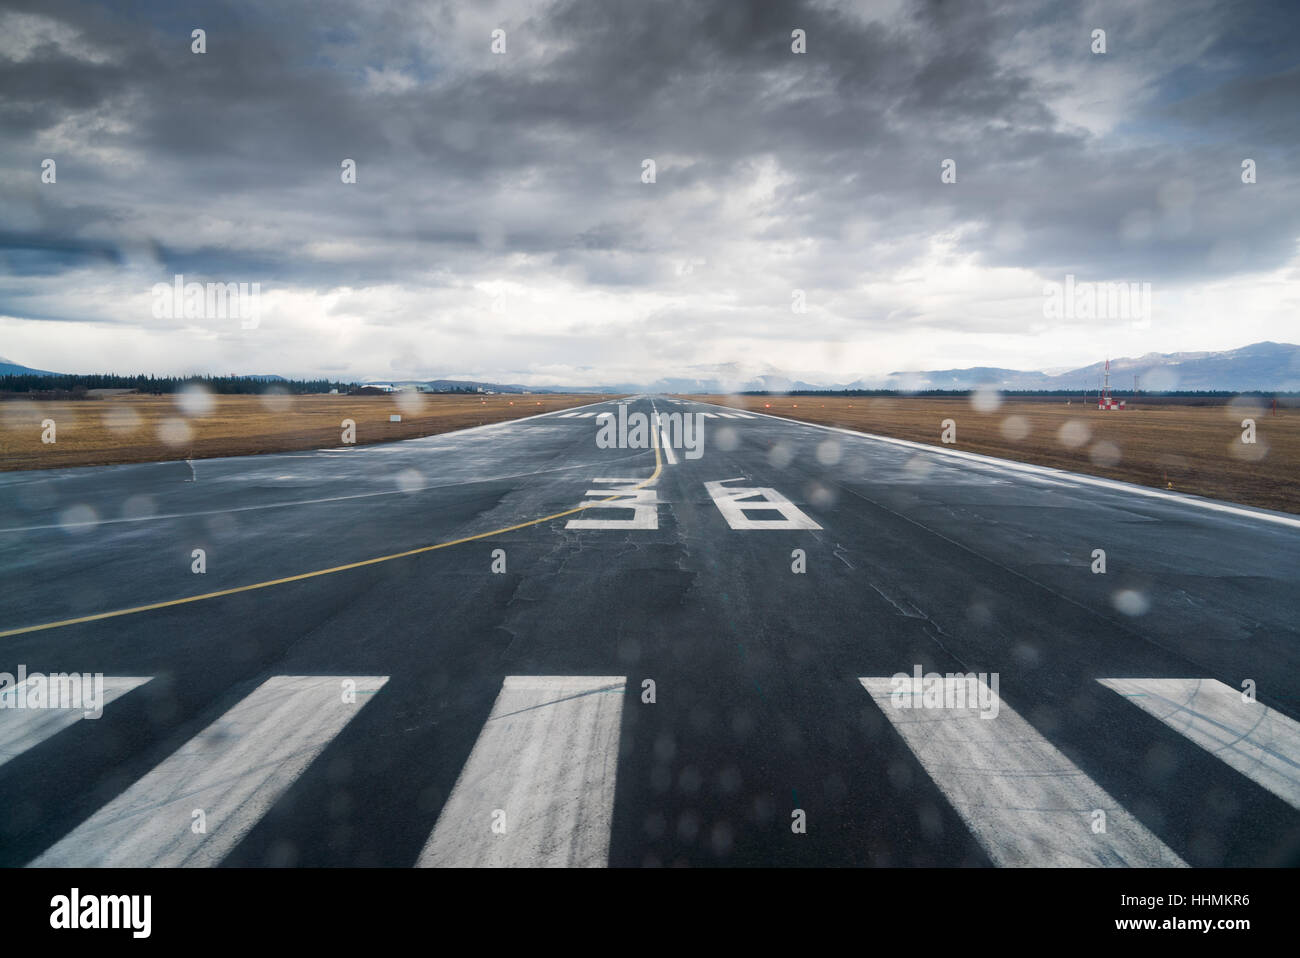 Water droplets speckle the lens at the threshold of a runway on a cold rainy day - Stock Image